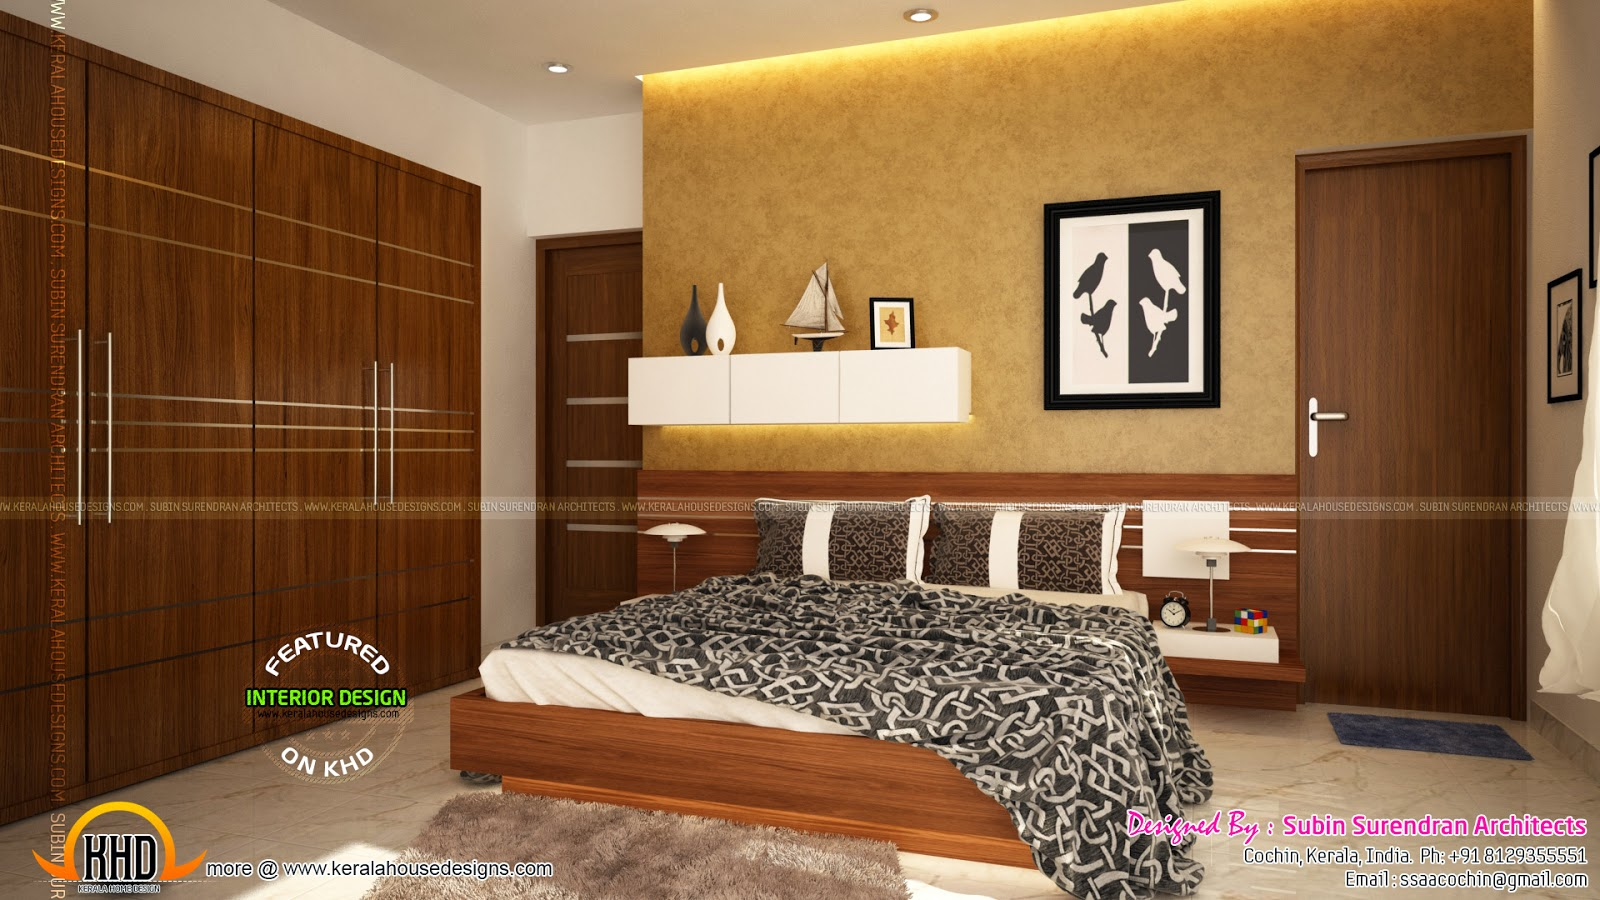 Interior Design Cochin Kerala Home Design And Floor Plans